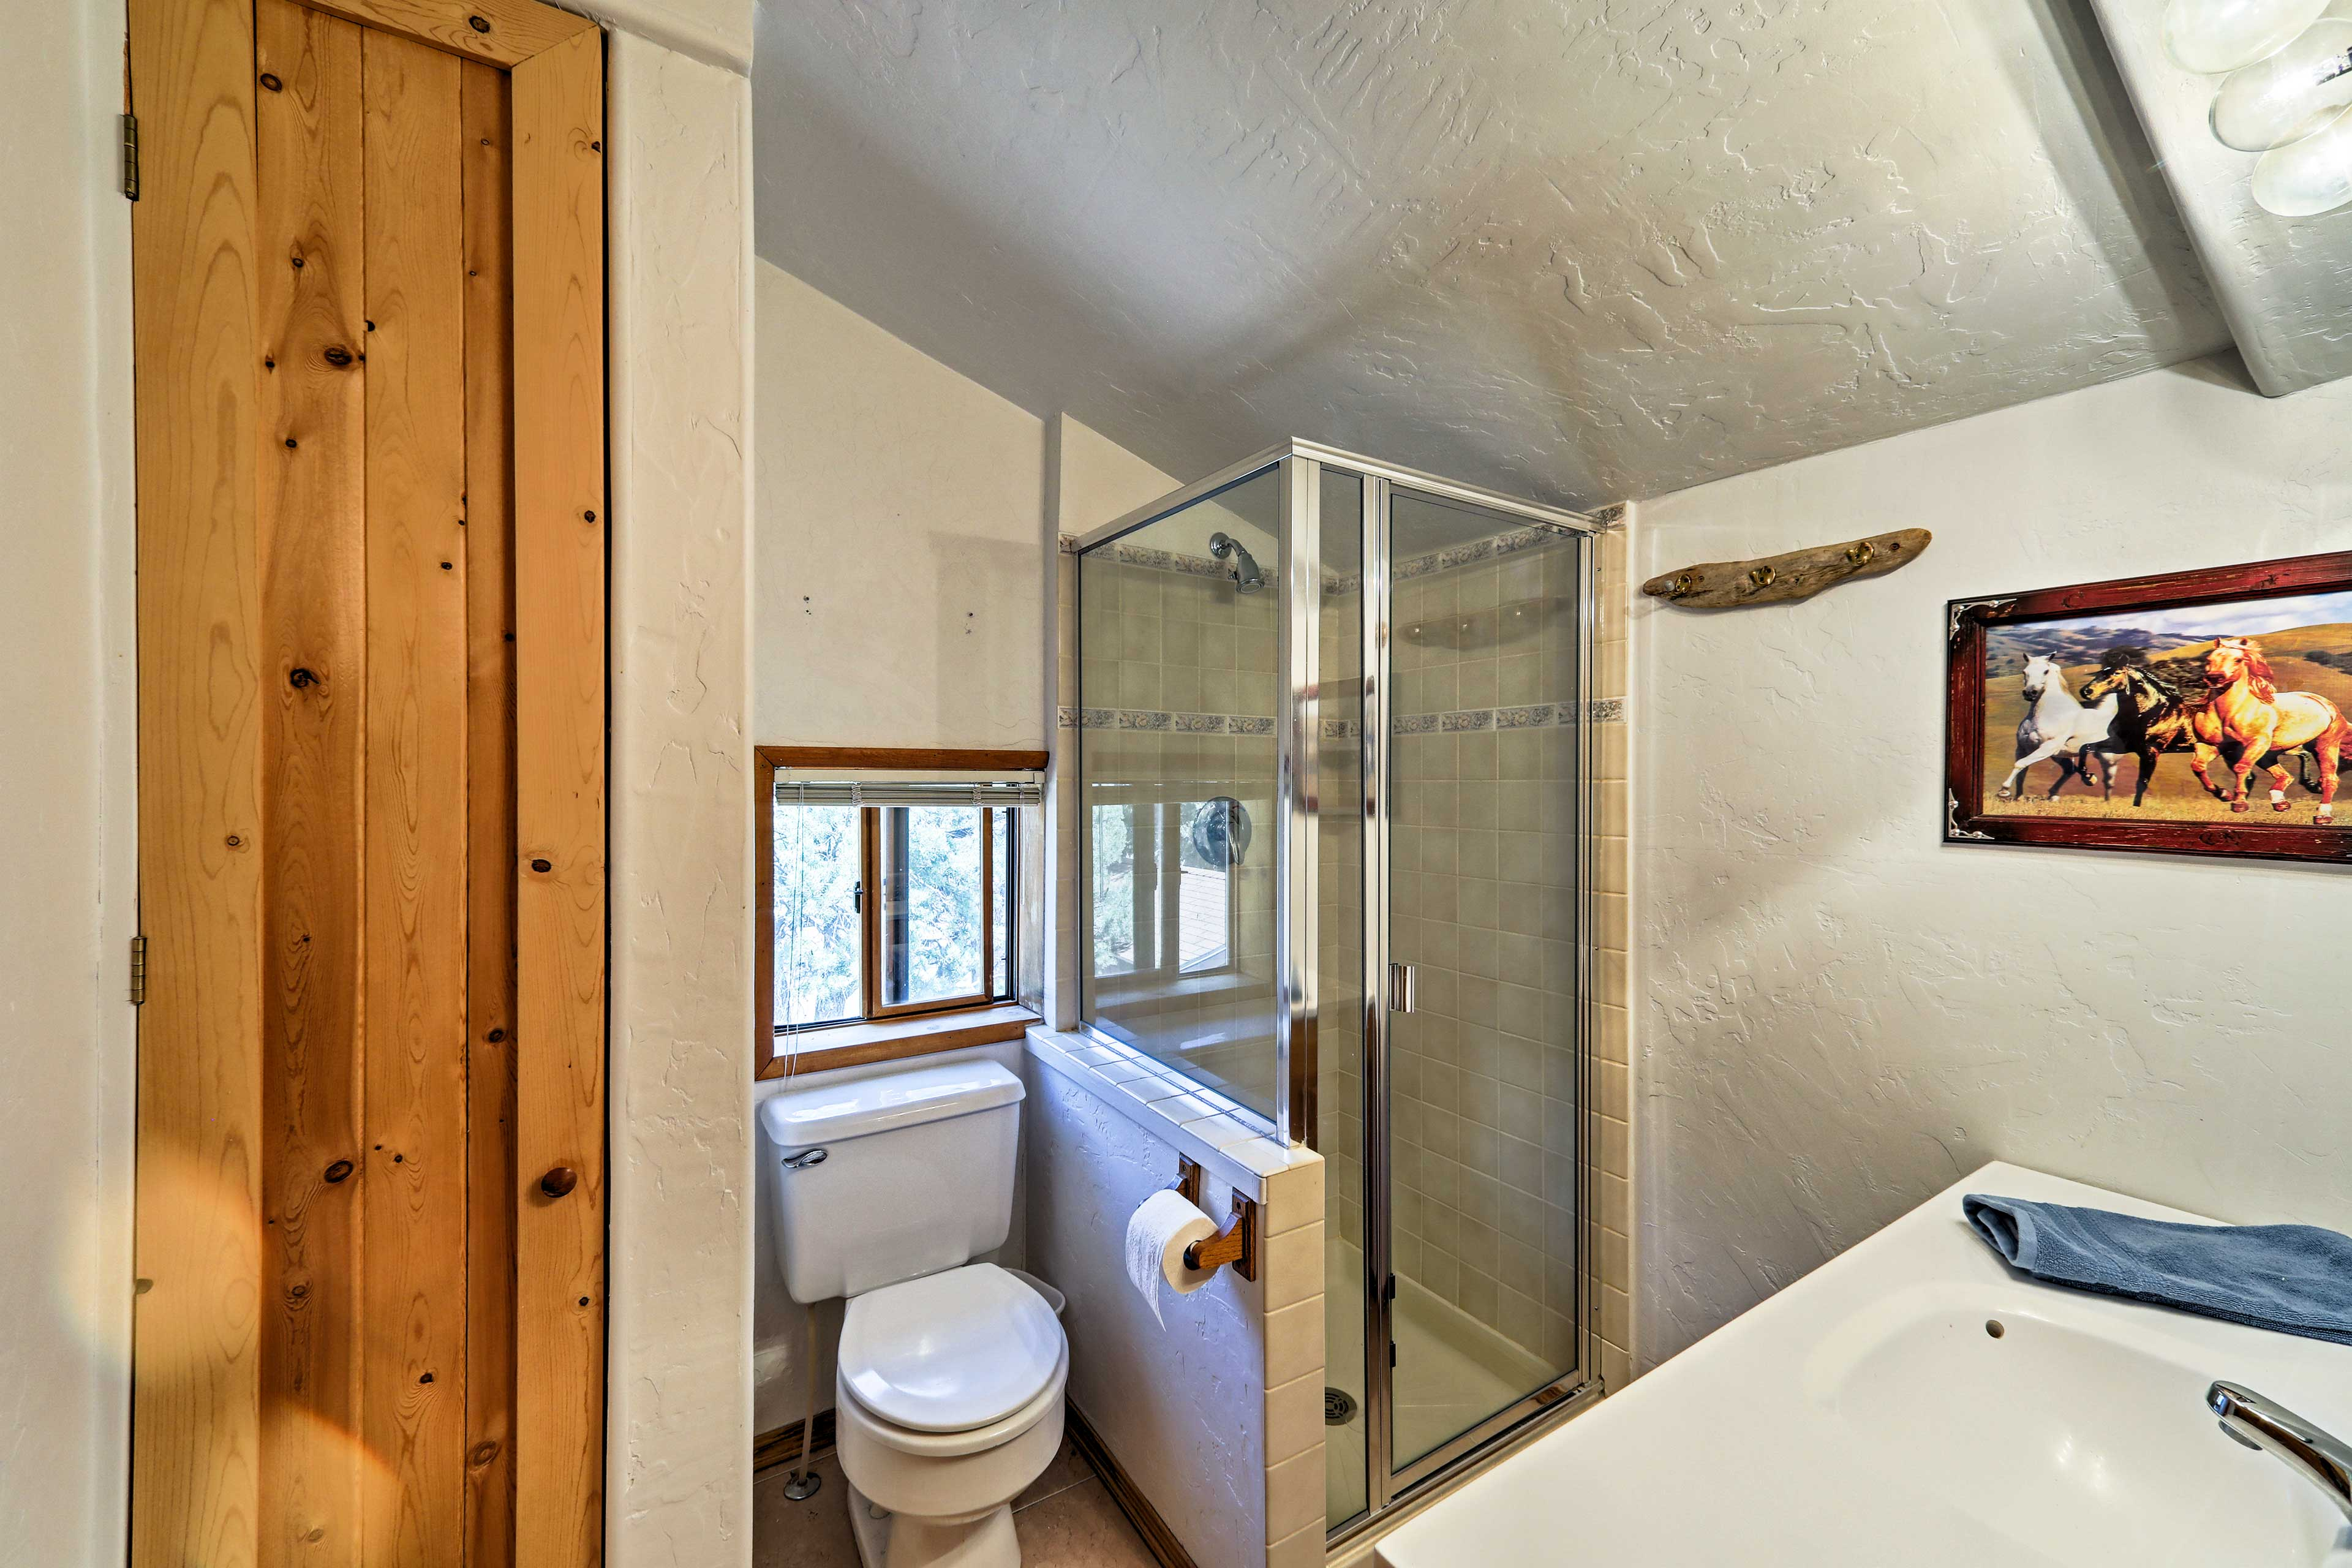 The third and final bathroom has a stand-up shower for extra space to rinse off!